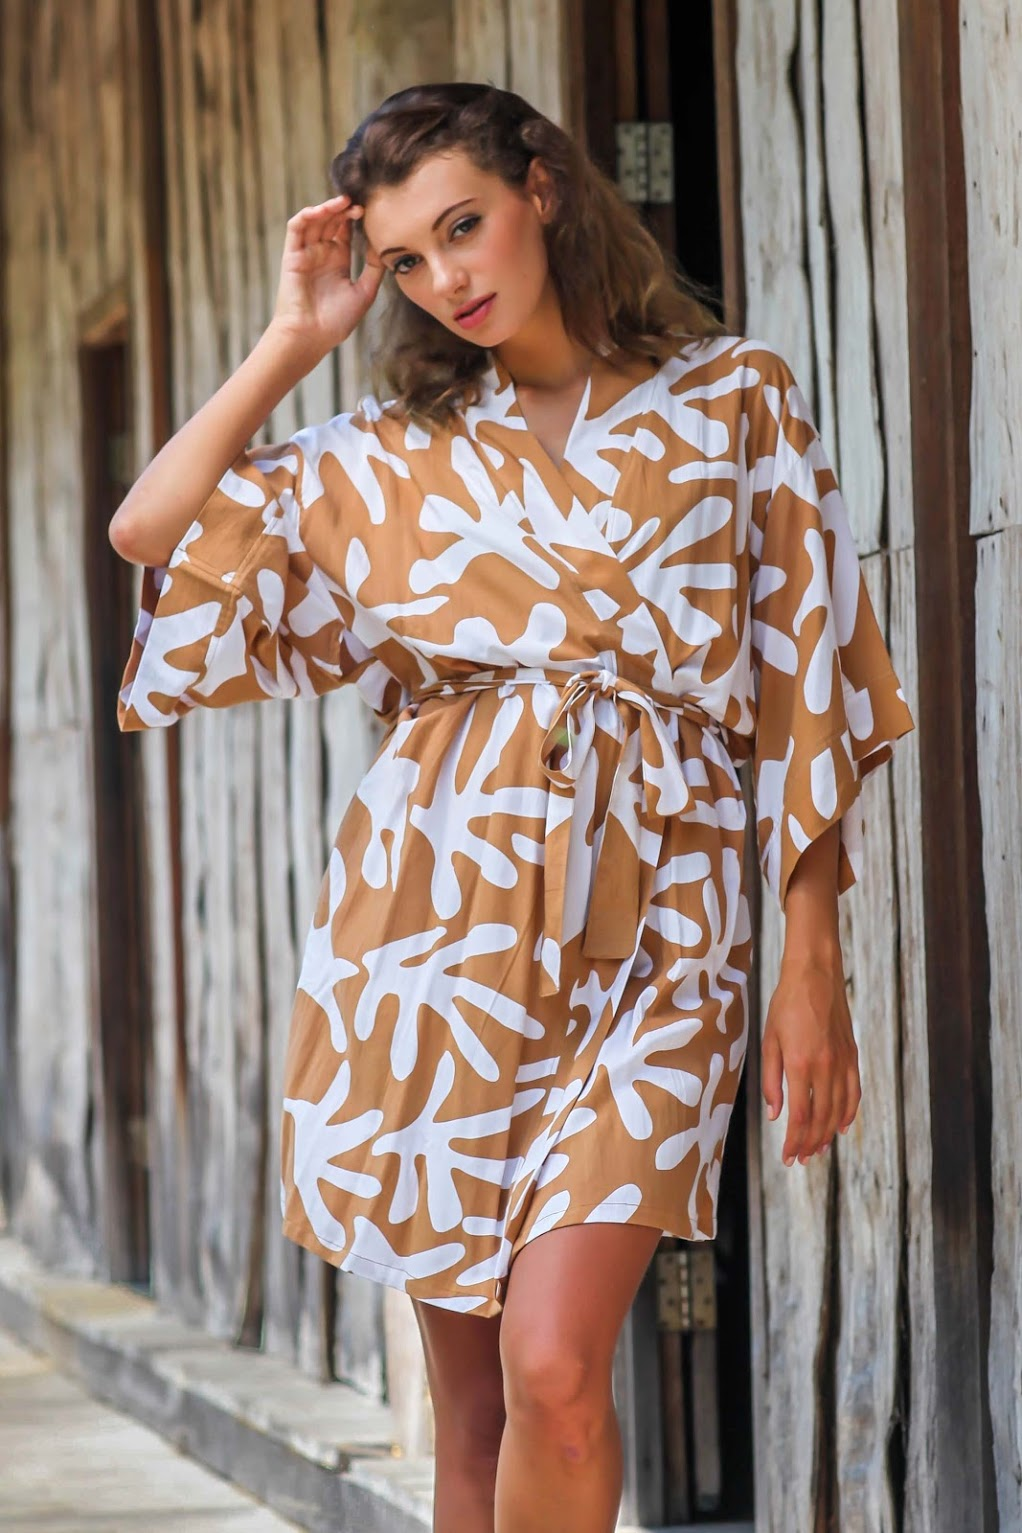 https://www.novica.com/p/womens-brown-and-white-fern-floral-rayon/271714/